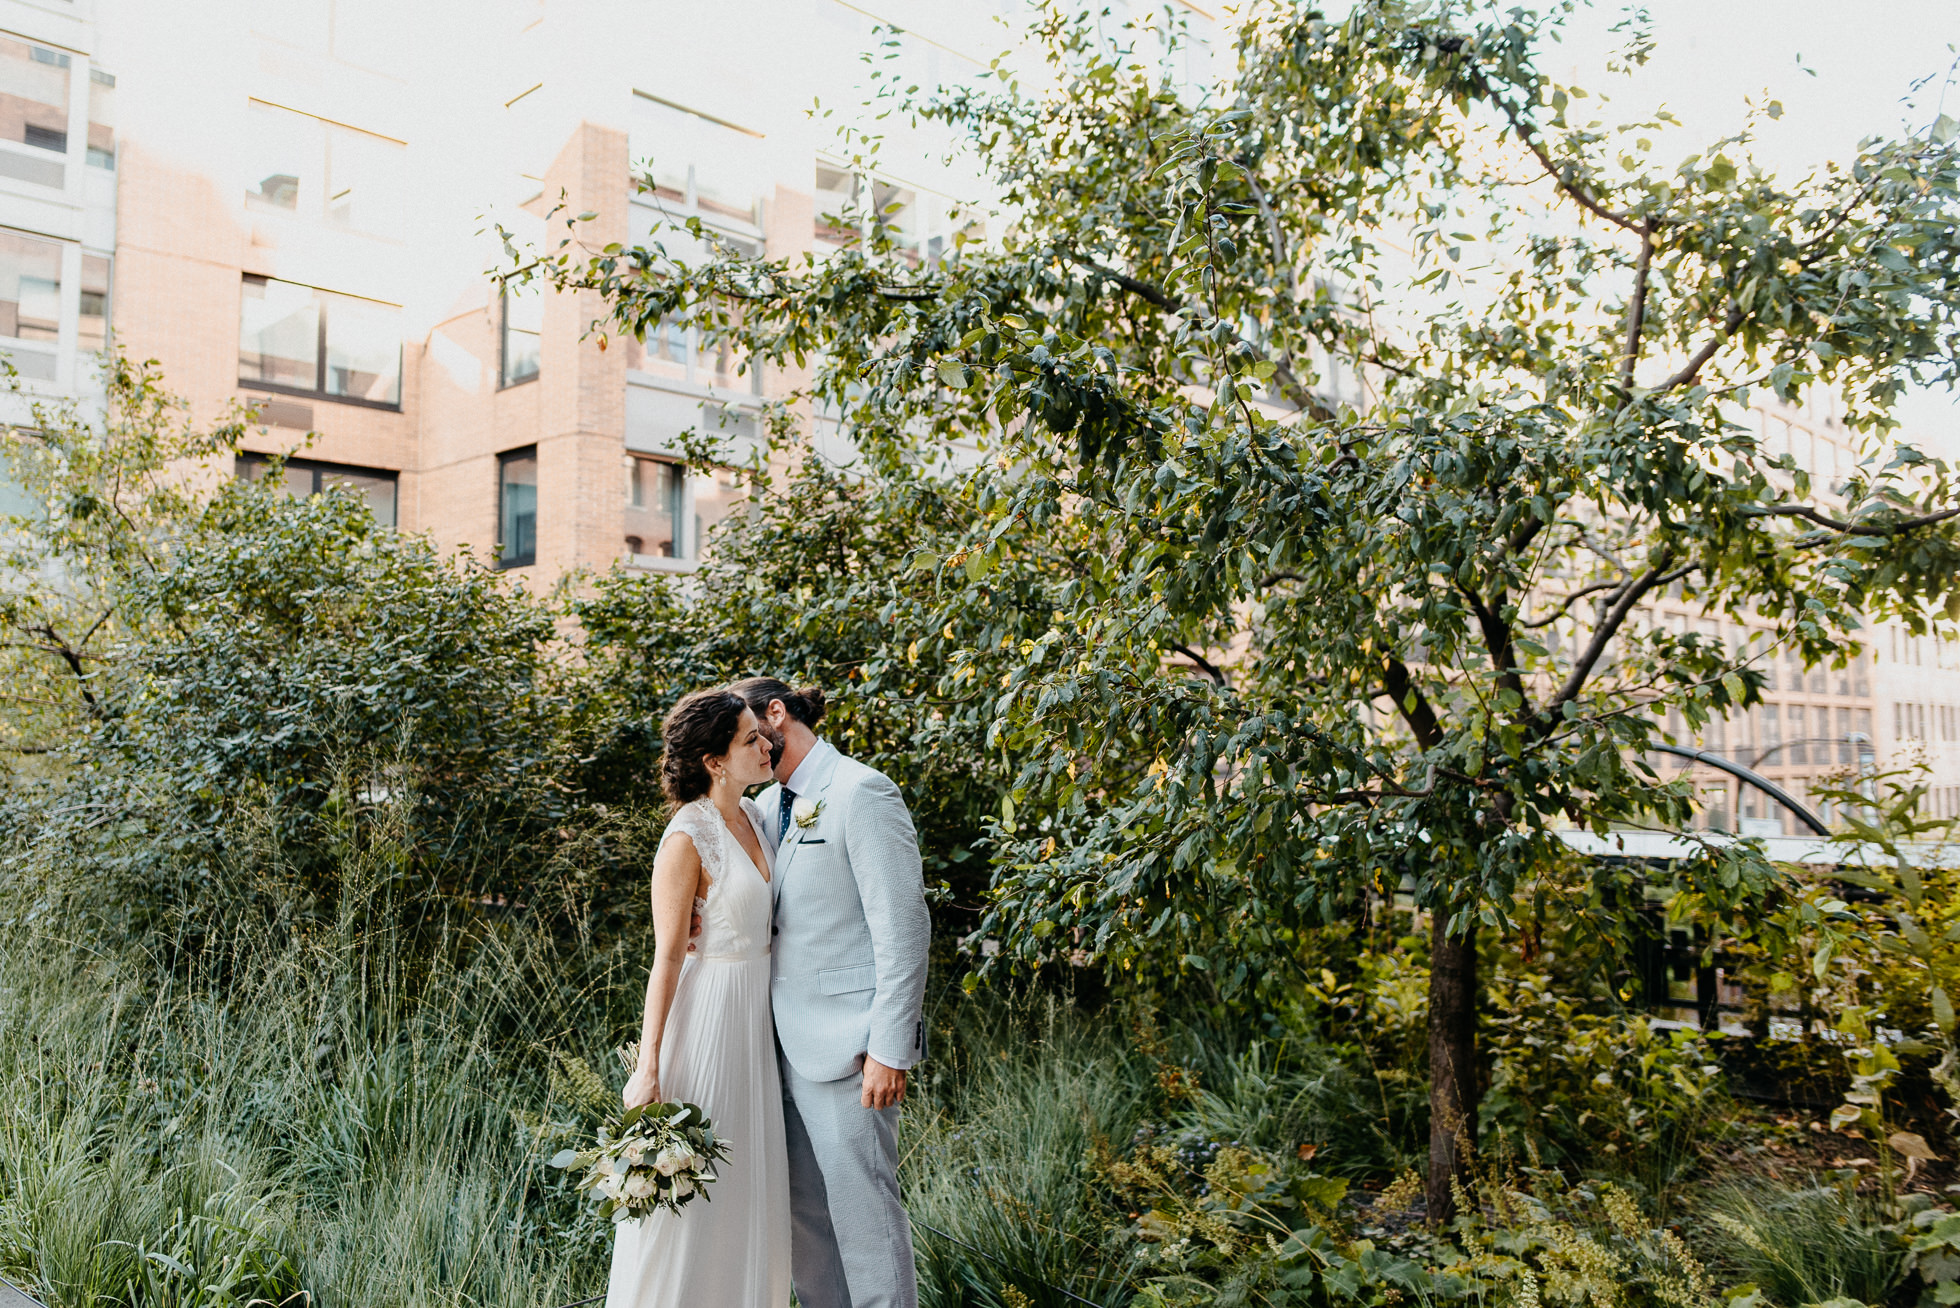 The Highline wedding photos